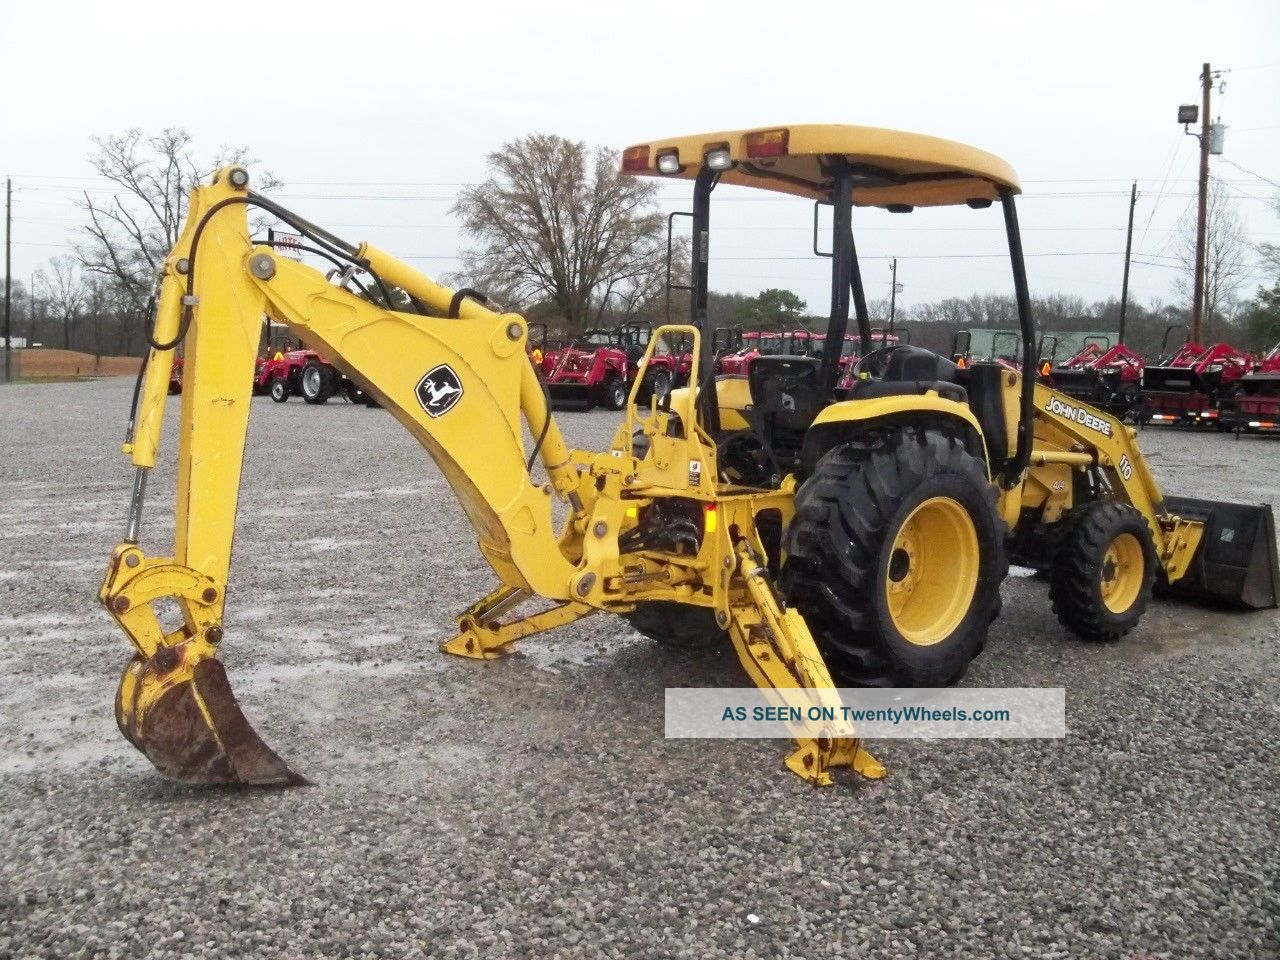 2006 John Deere 110 Tractor Loader Backhoe - Skid Steer Qa Bucket ...